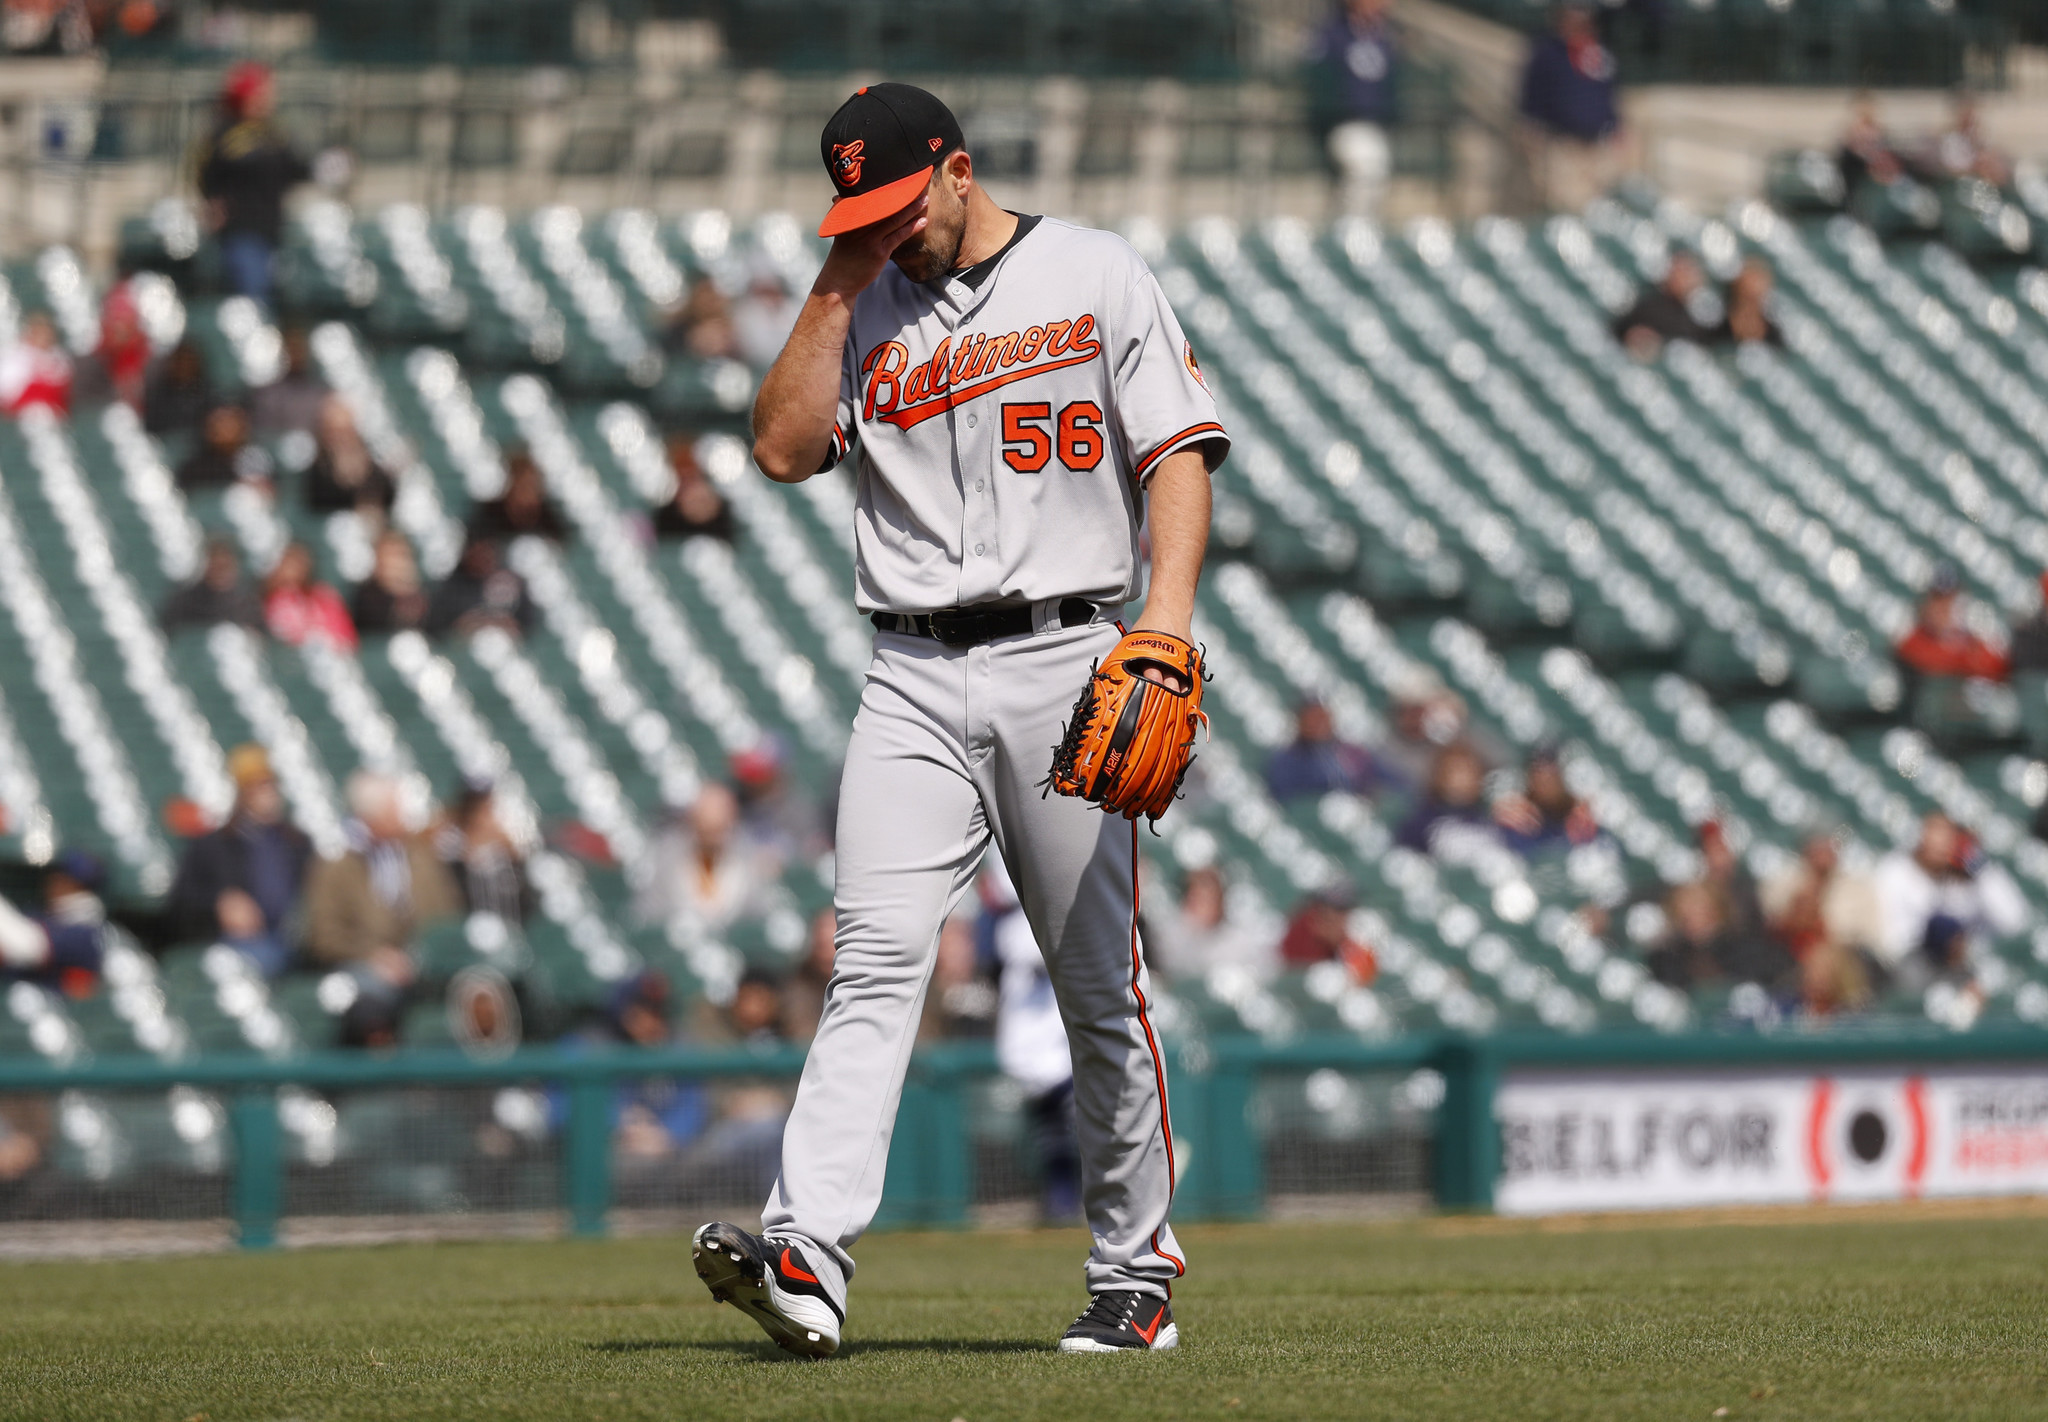 Bal-orioles-rewind-looking-back-at-wednesday-s-6-5-loss-to-the-tigers-20180418